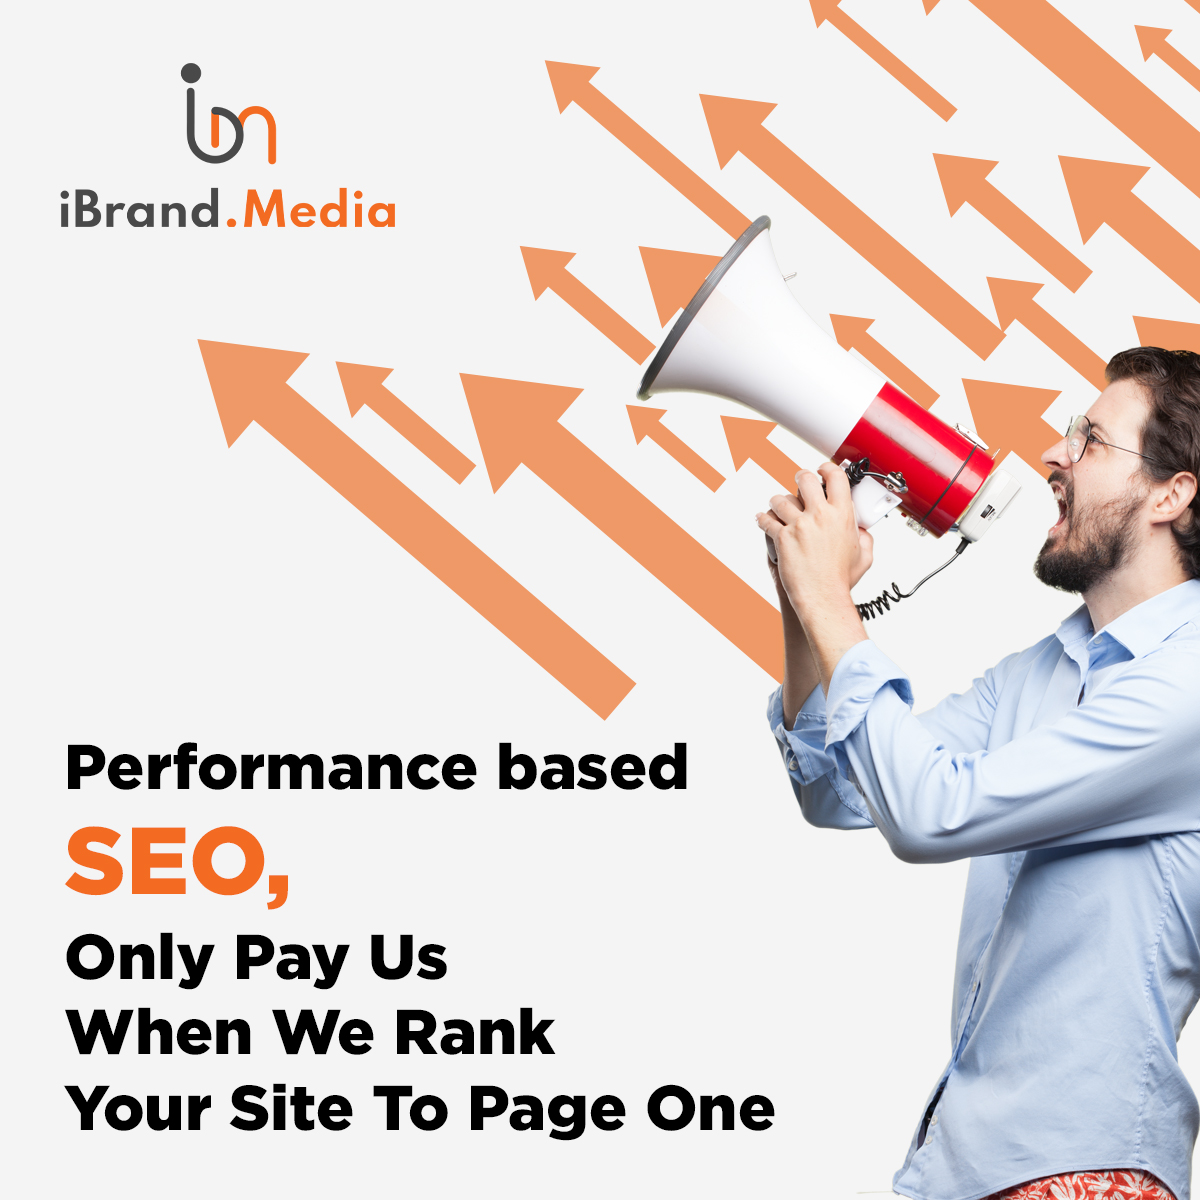 iBrand.Media: An Emerging Digital Marketing Agency and SEO Service Company Offers Performance Based Services